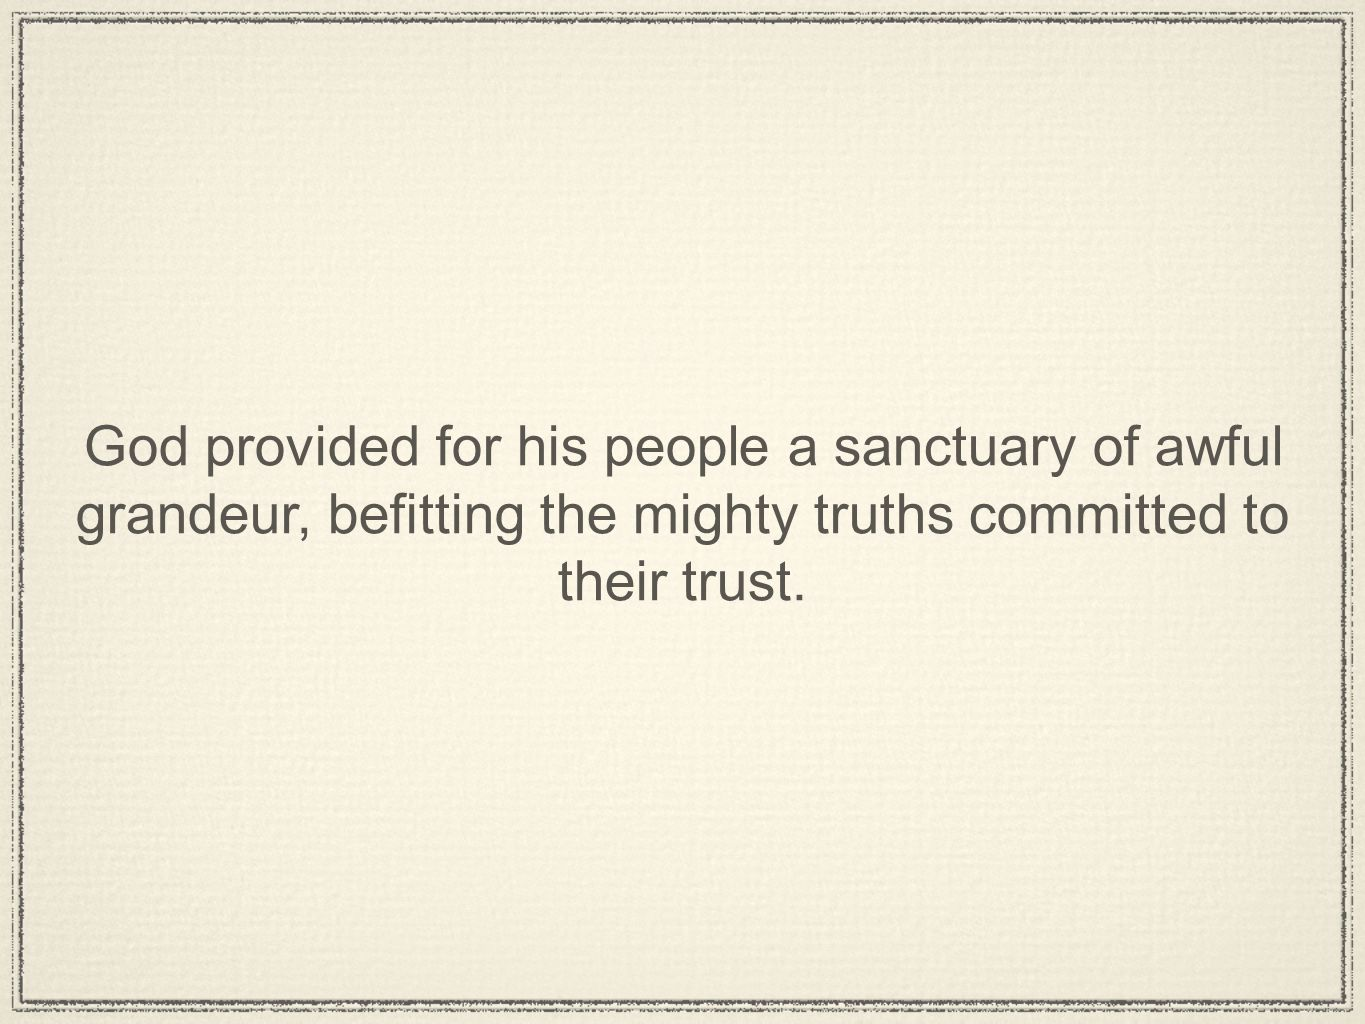 God provided for his people a sanctuary of awful grandeur, befitting the mighty truths committed to their trust.